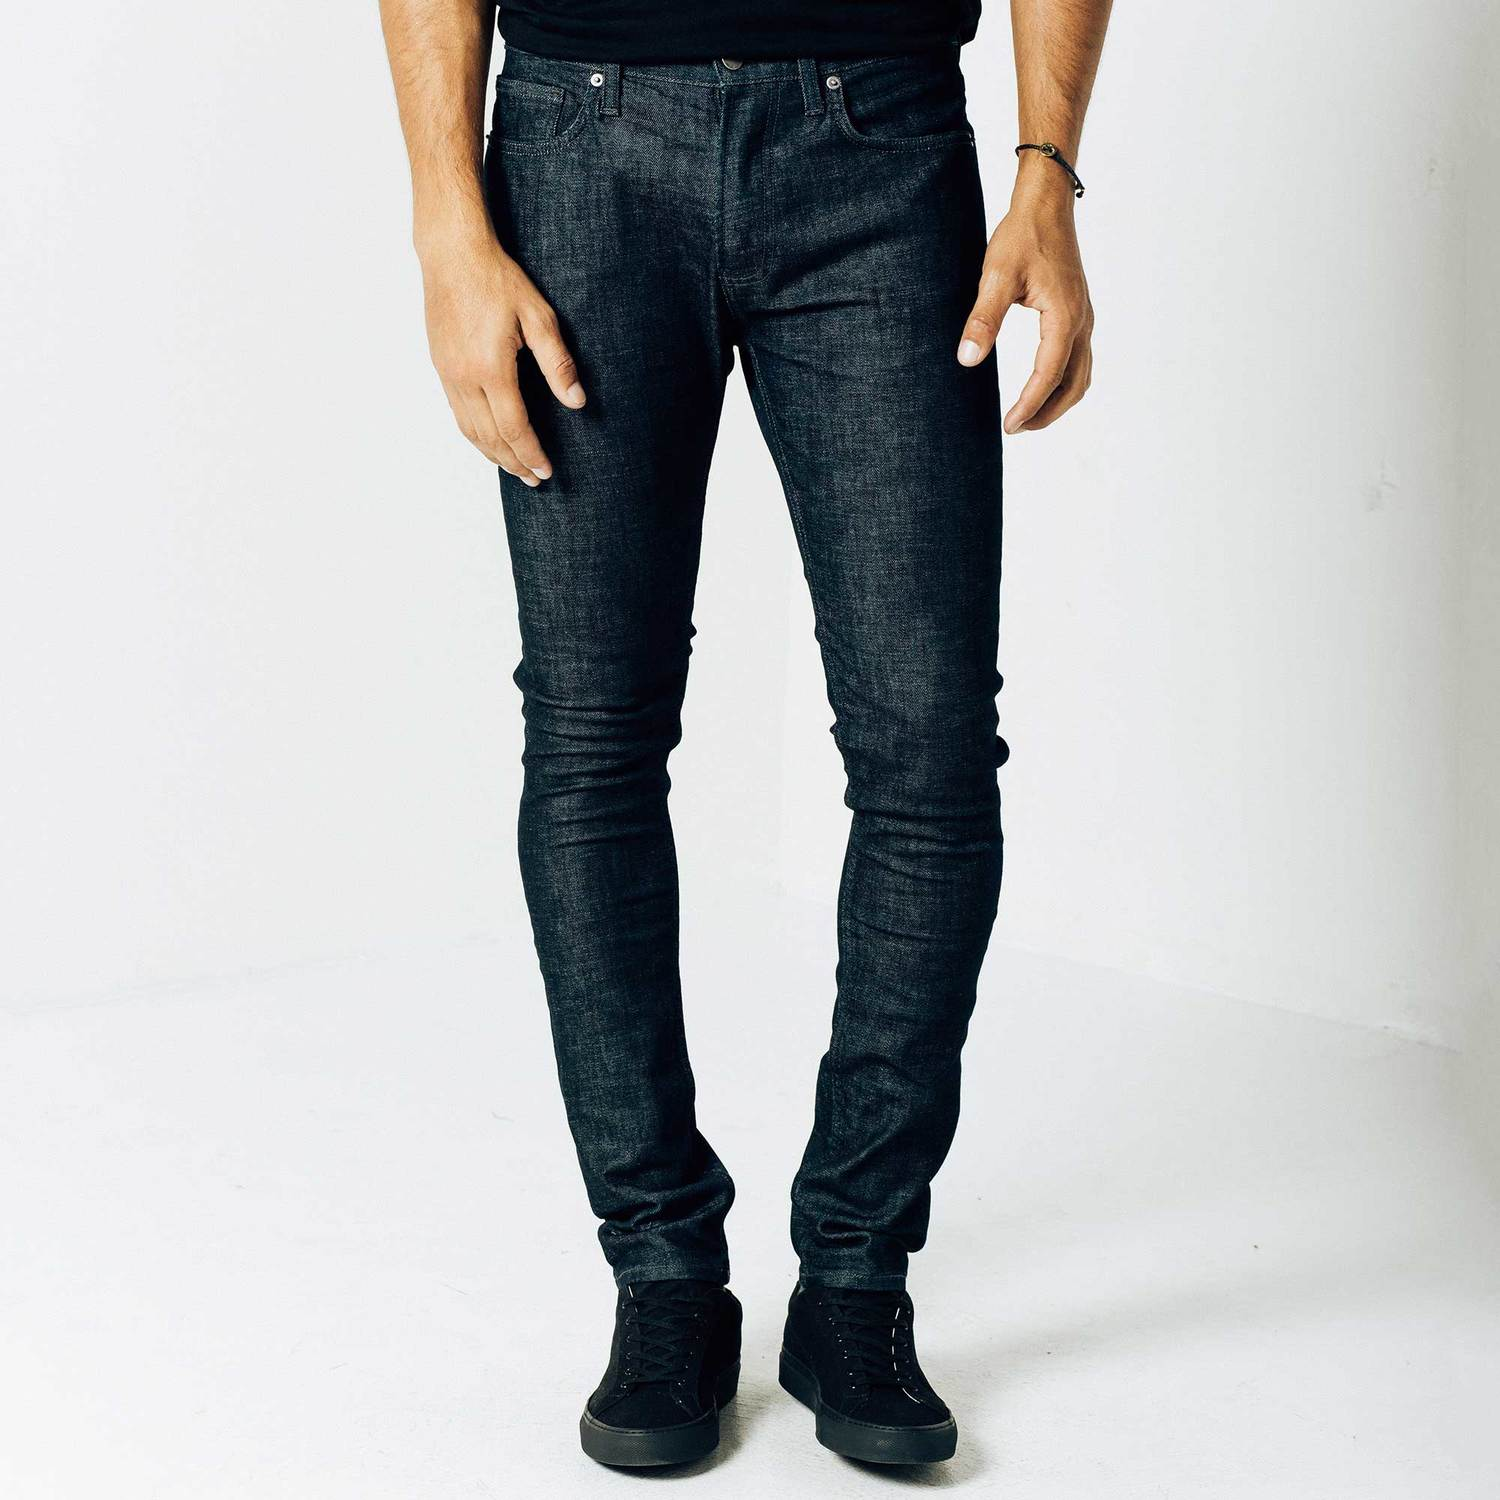 Shop American Eagle Outfitters for men's and women's jeans, T's, shoes and more. All styles are available in additional sizes only at skachat-clas.cf